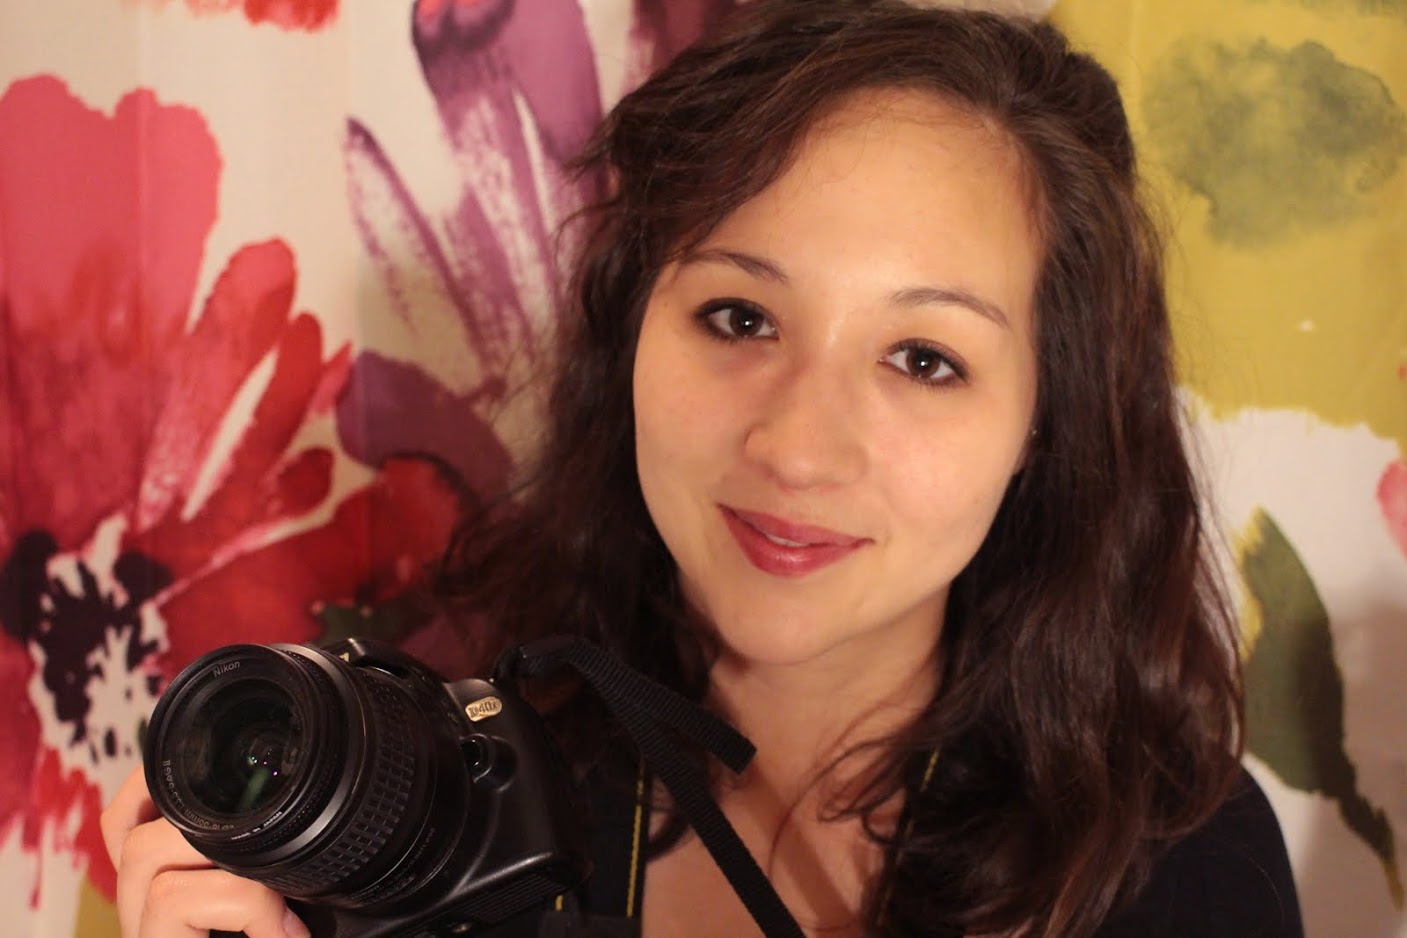 Meet Katie: Videography Intern Extraordinaire